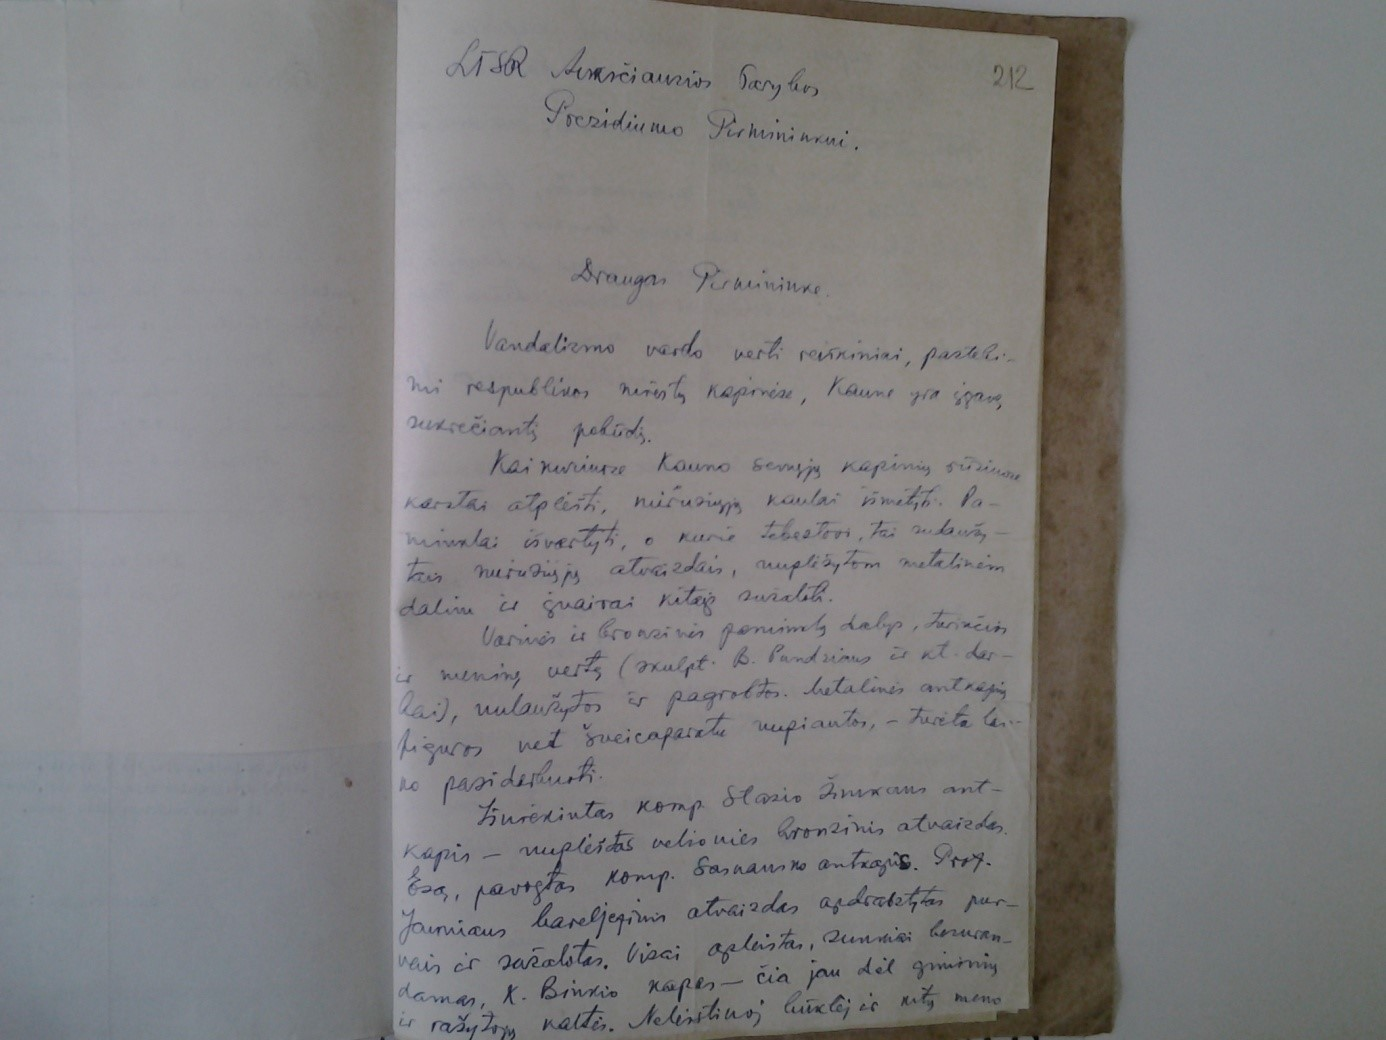 Augustinas Gricius letter to Justas Paleckis. 1953. Source: Lithuanian Communist party documents archive.